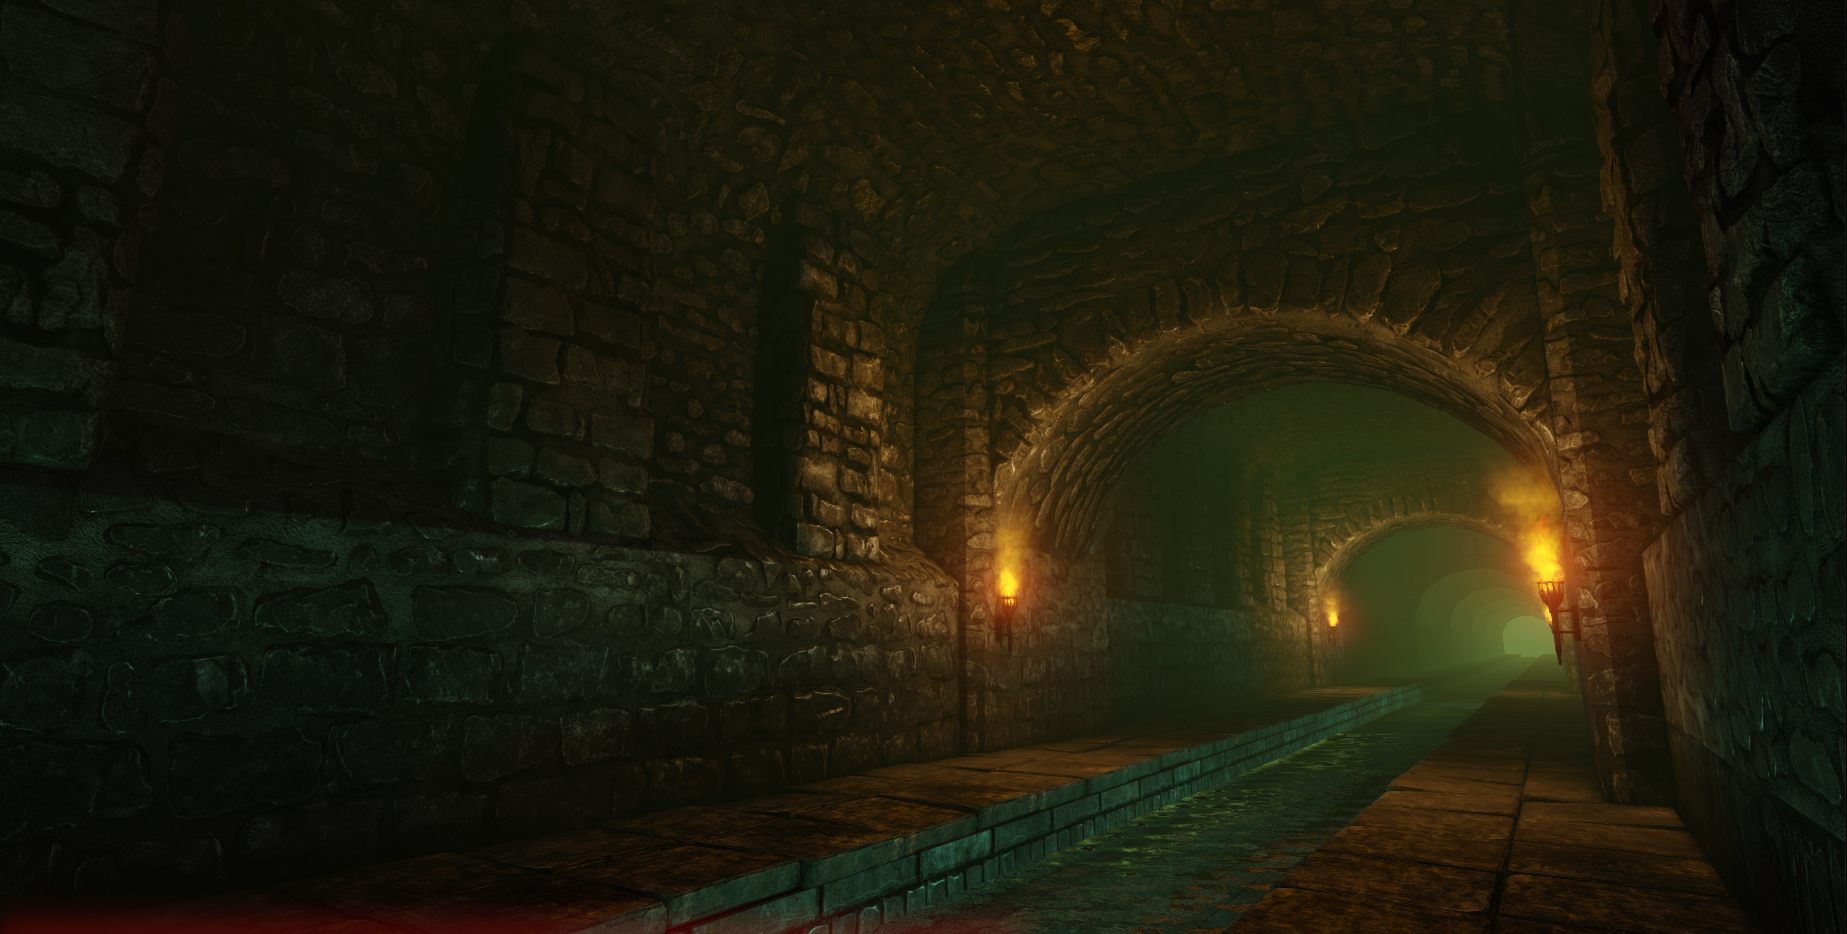 wall6_by_mellon3d-d67vkhl.jpg